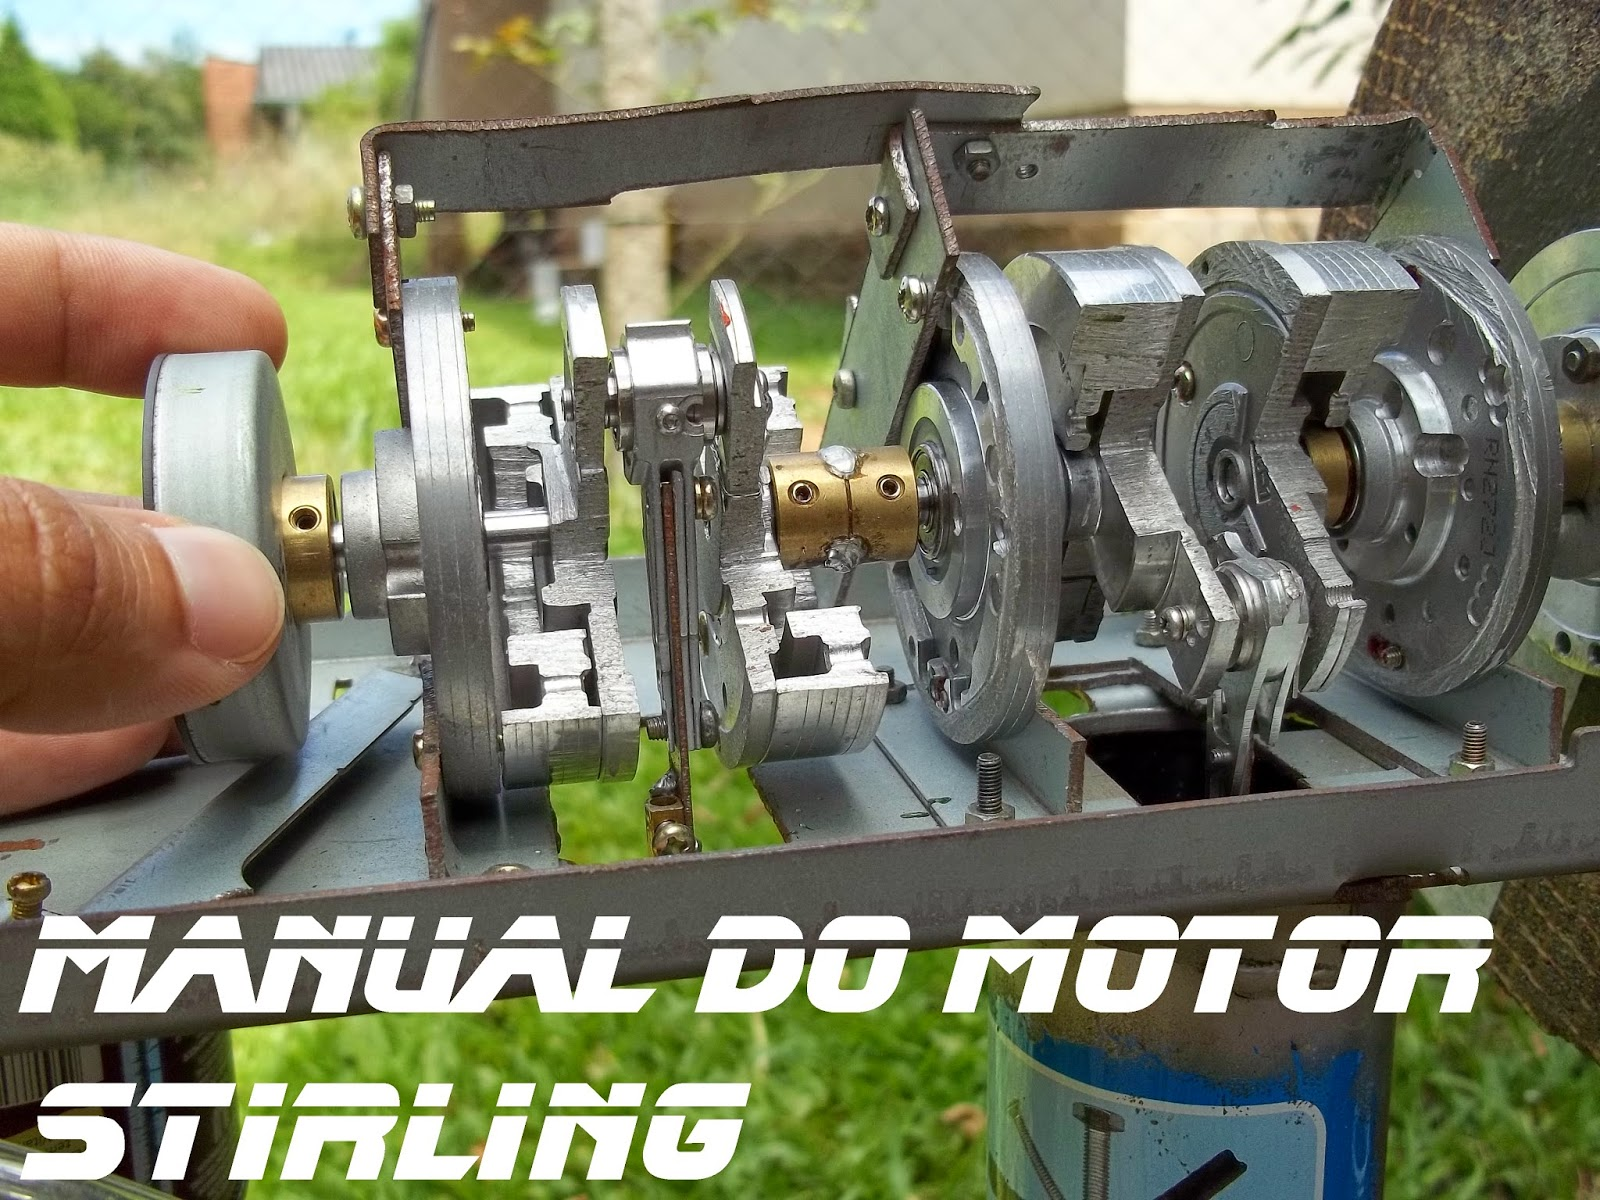 Montagem completa do virabrequim, Manual do motor Stirling